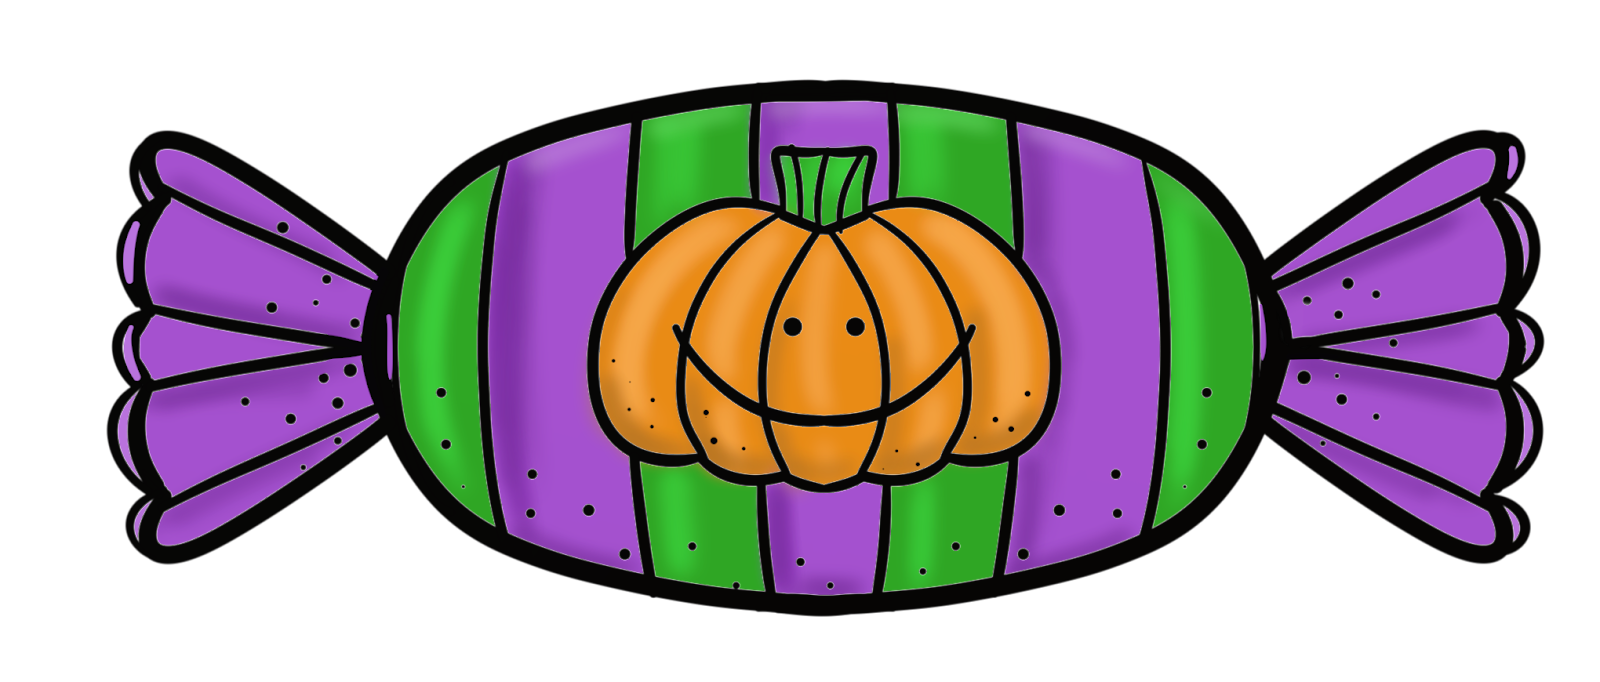 pumpkin candy purple and green - Chirp Graphics.png